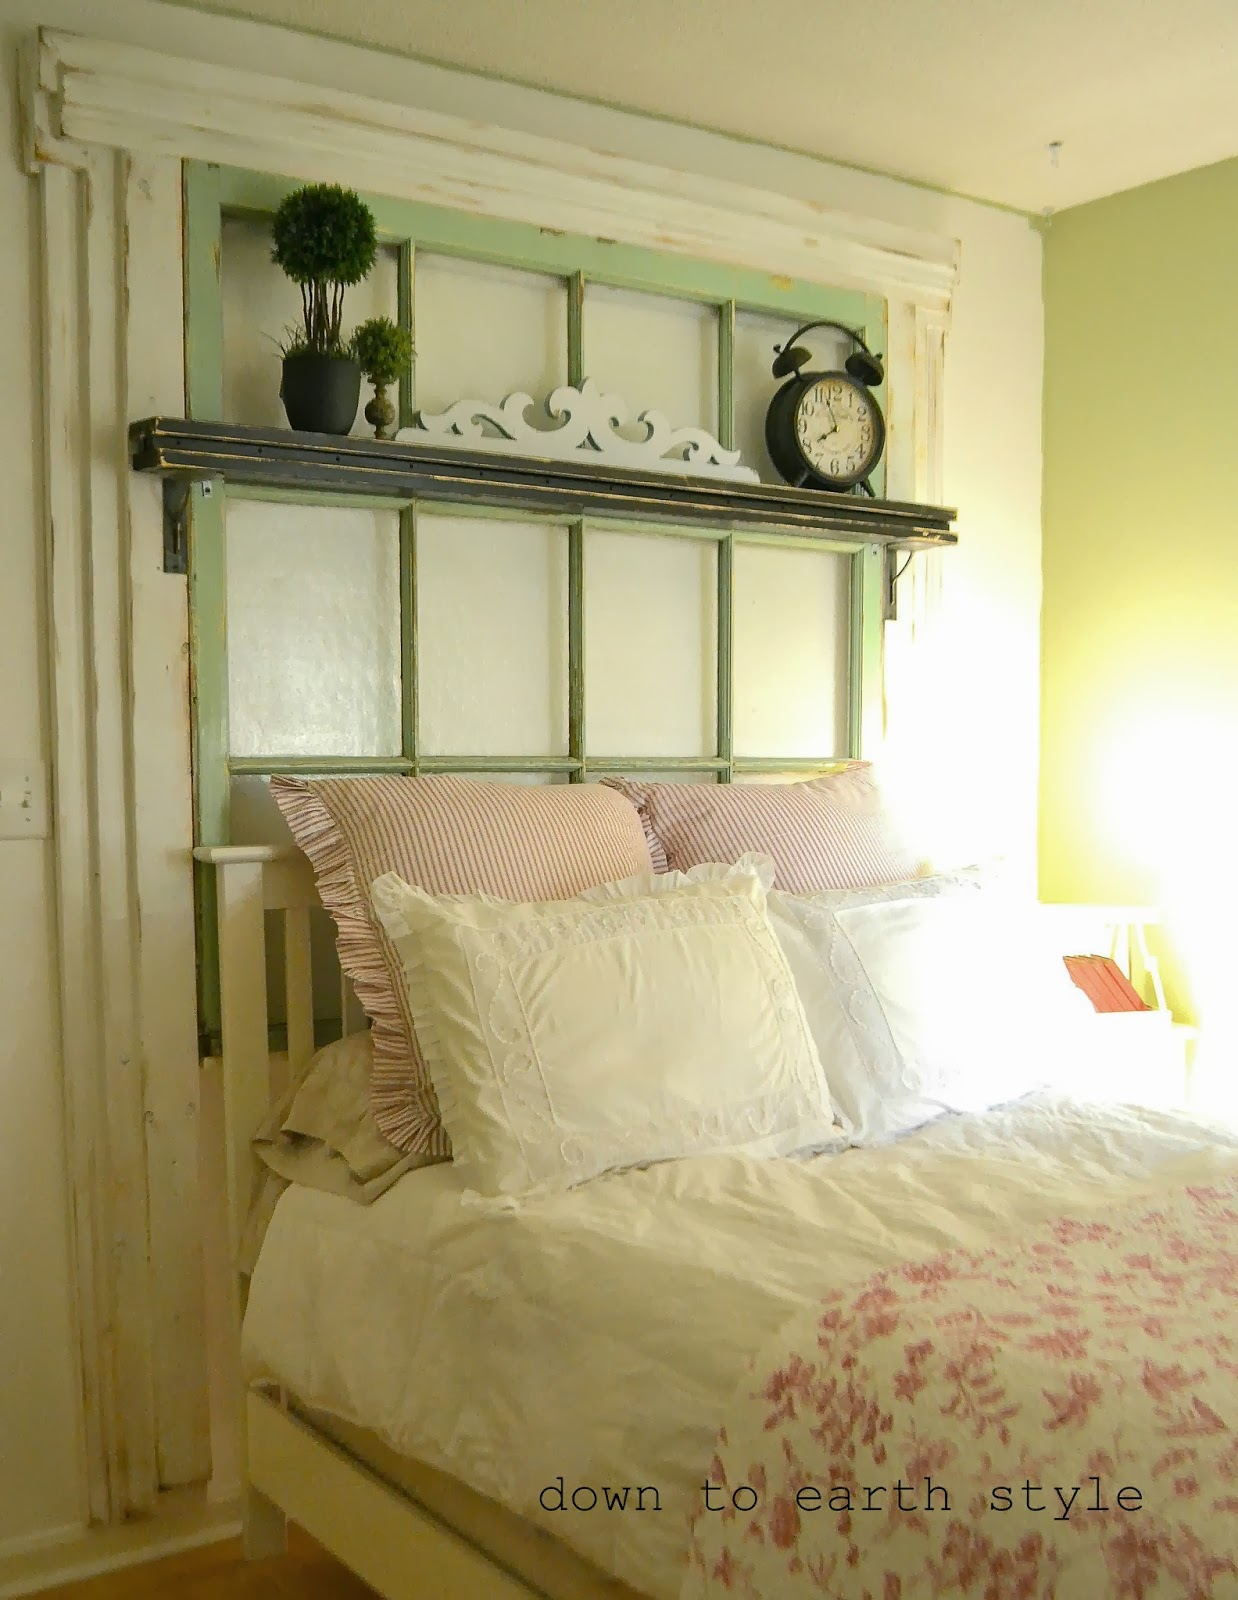 Down To Earth Style Old Window Headboard